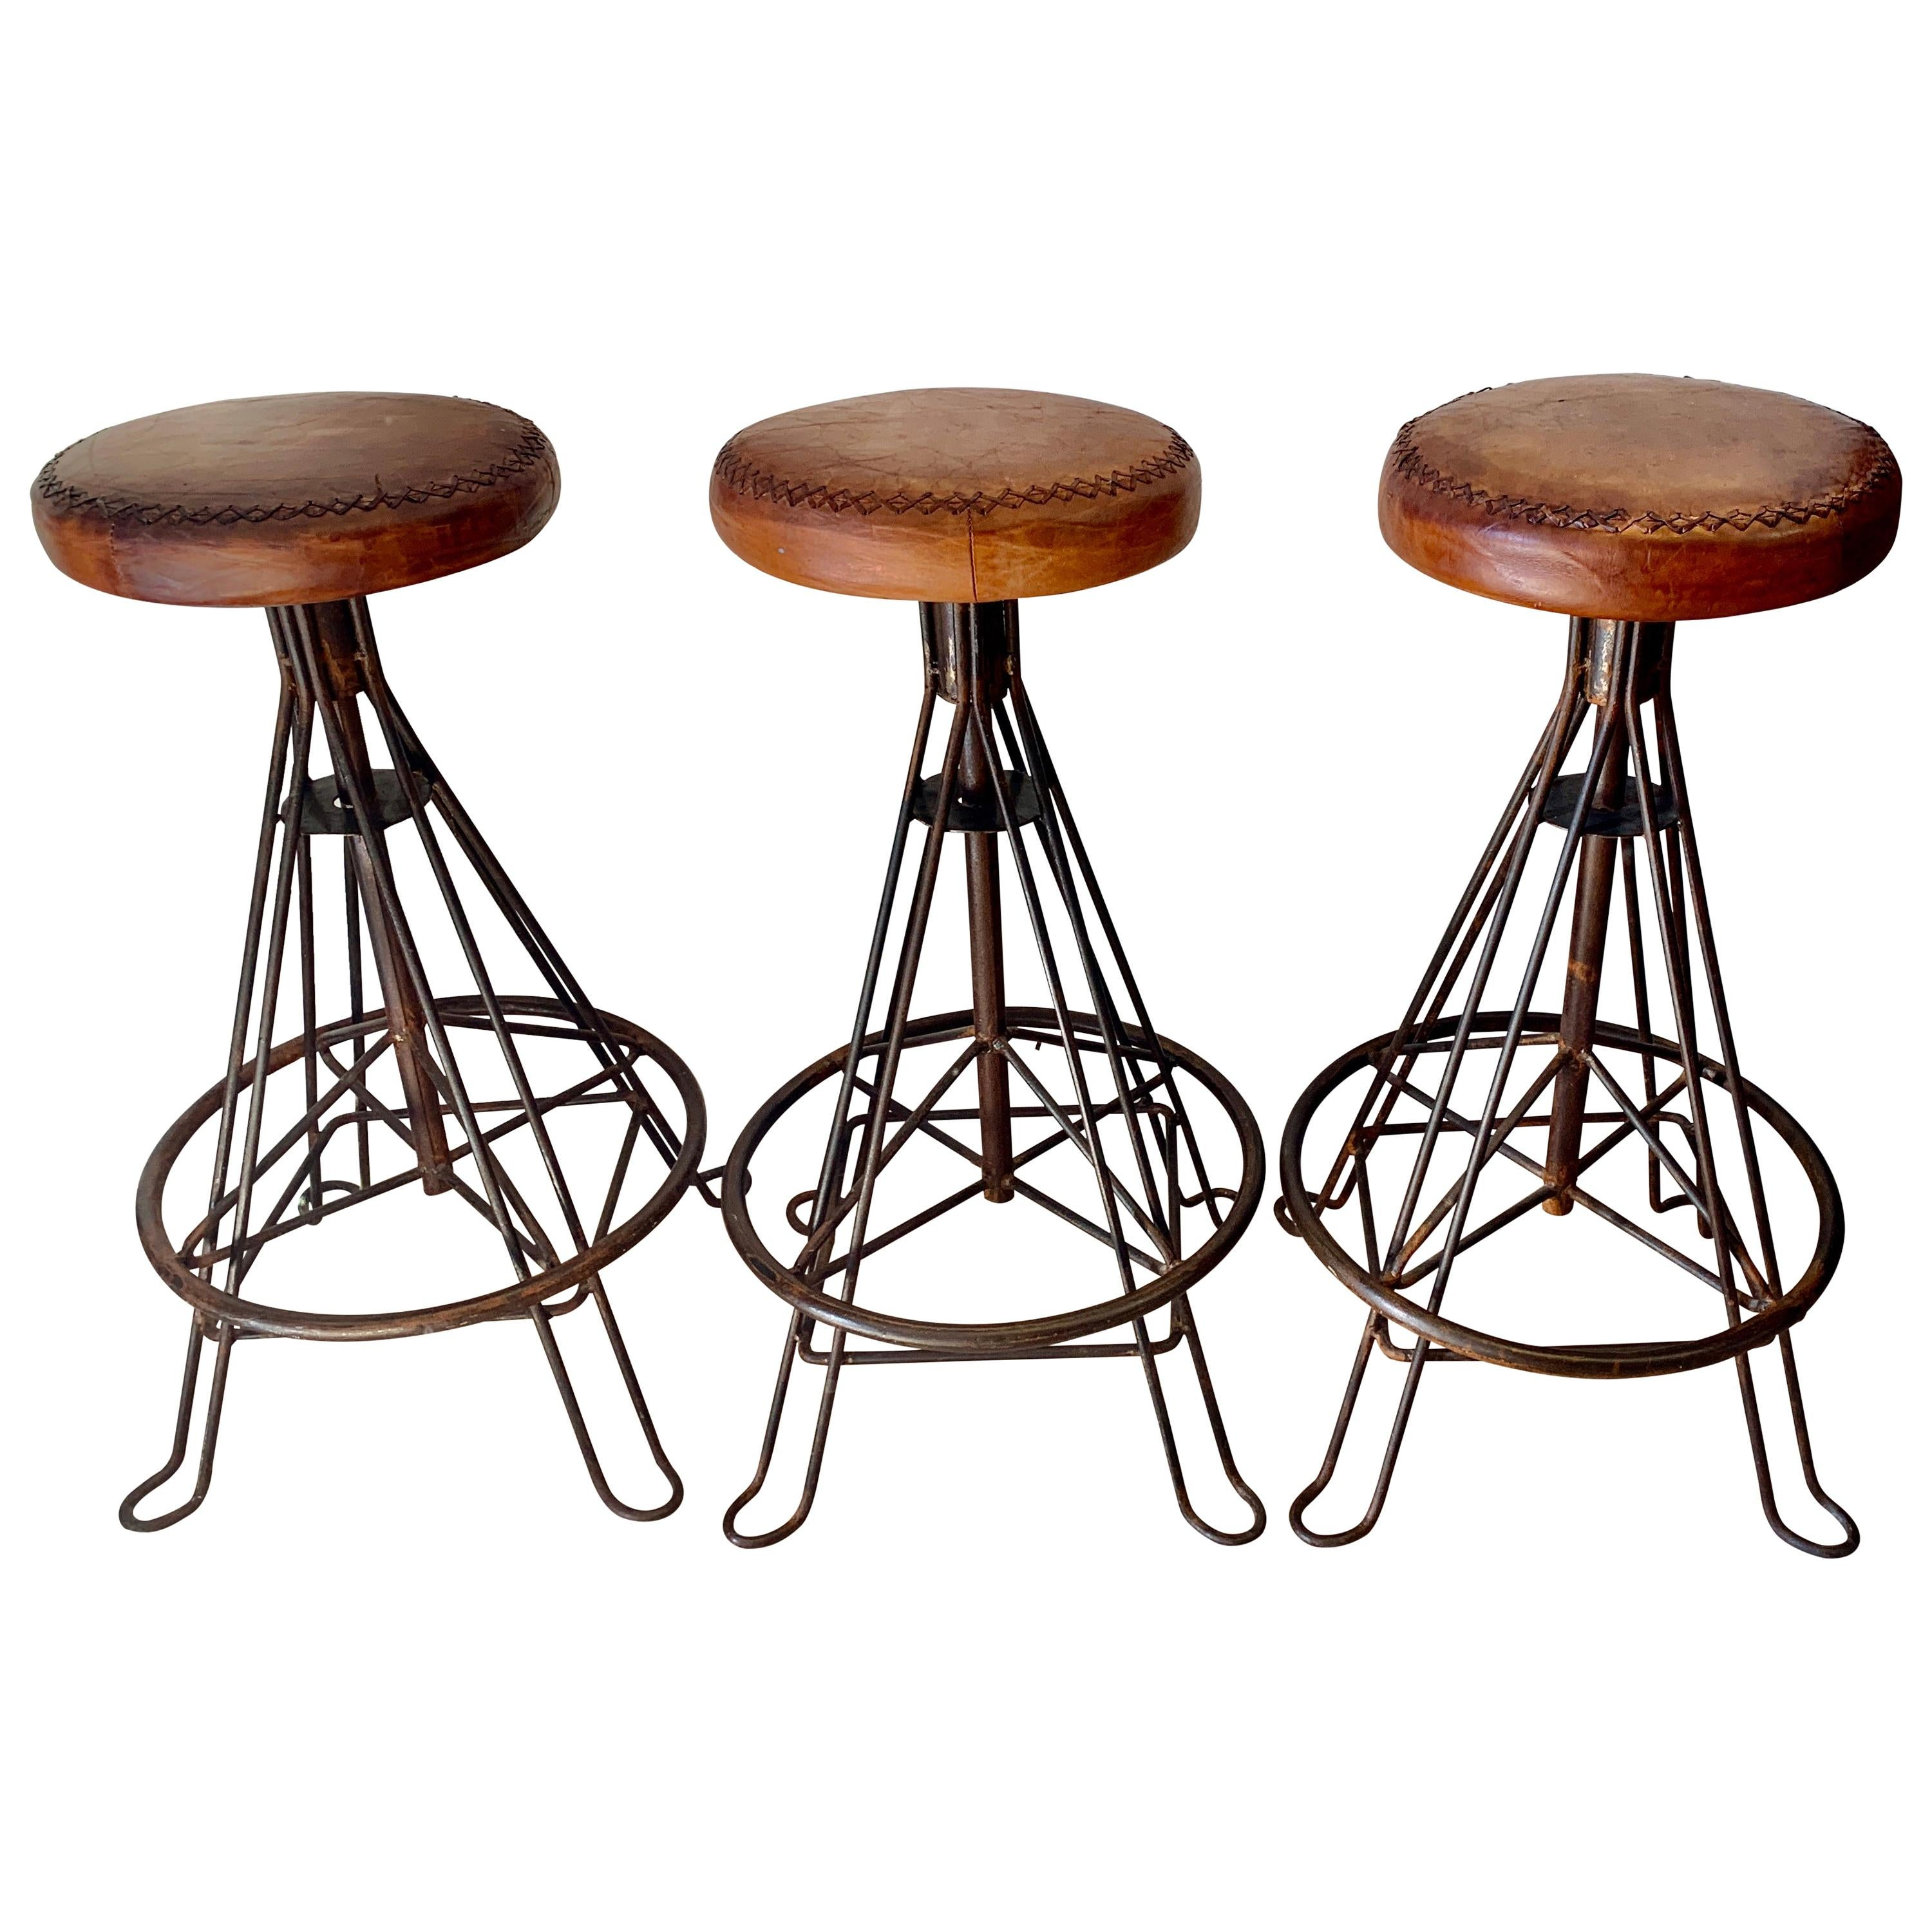 Set of Three Wrought Iron and Stitched Leather Bar Stools